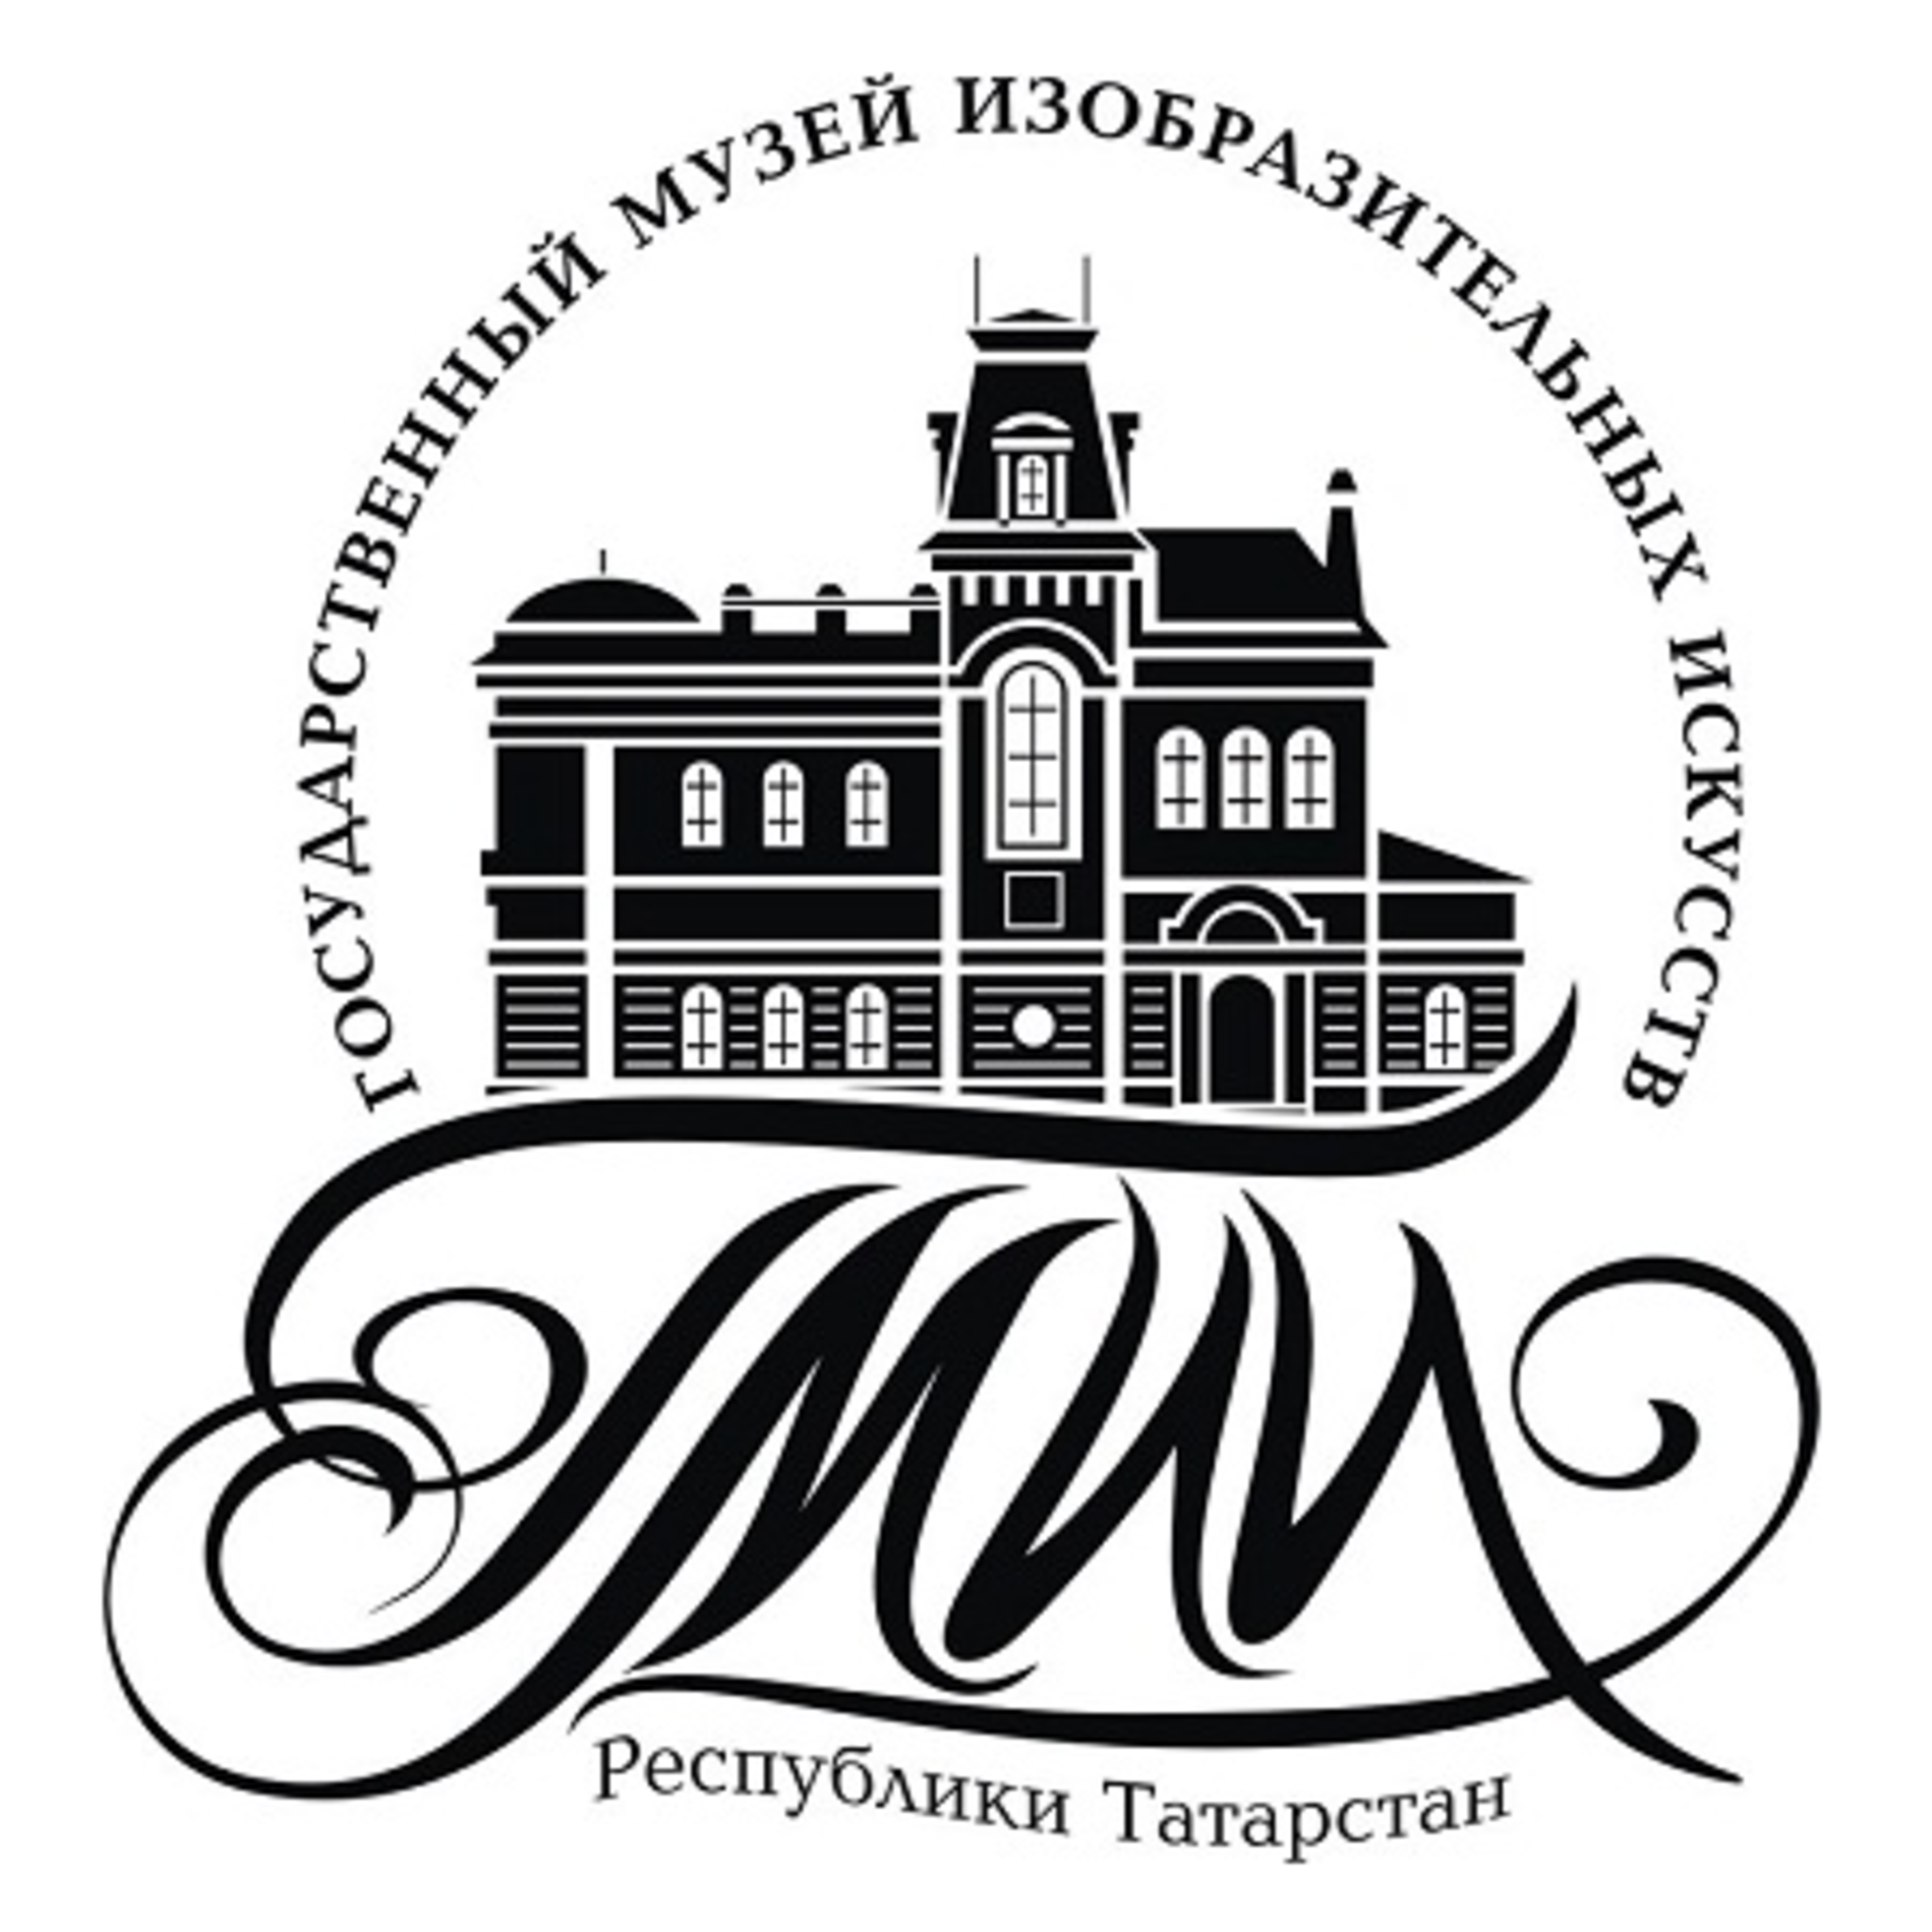 The state museum of fine arts of the Republic of Tatarstan